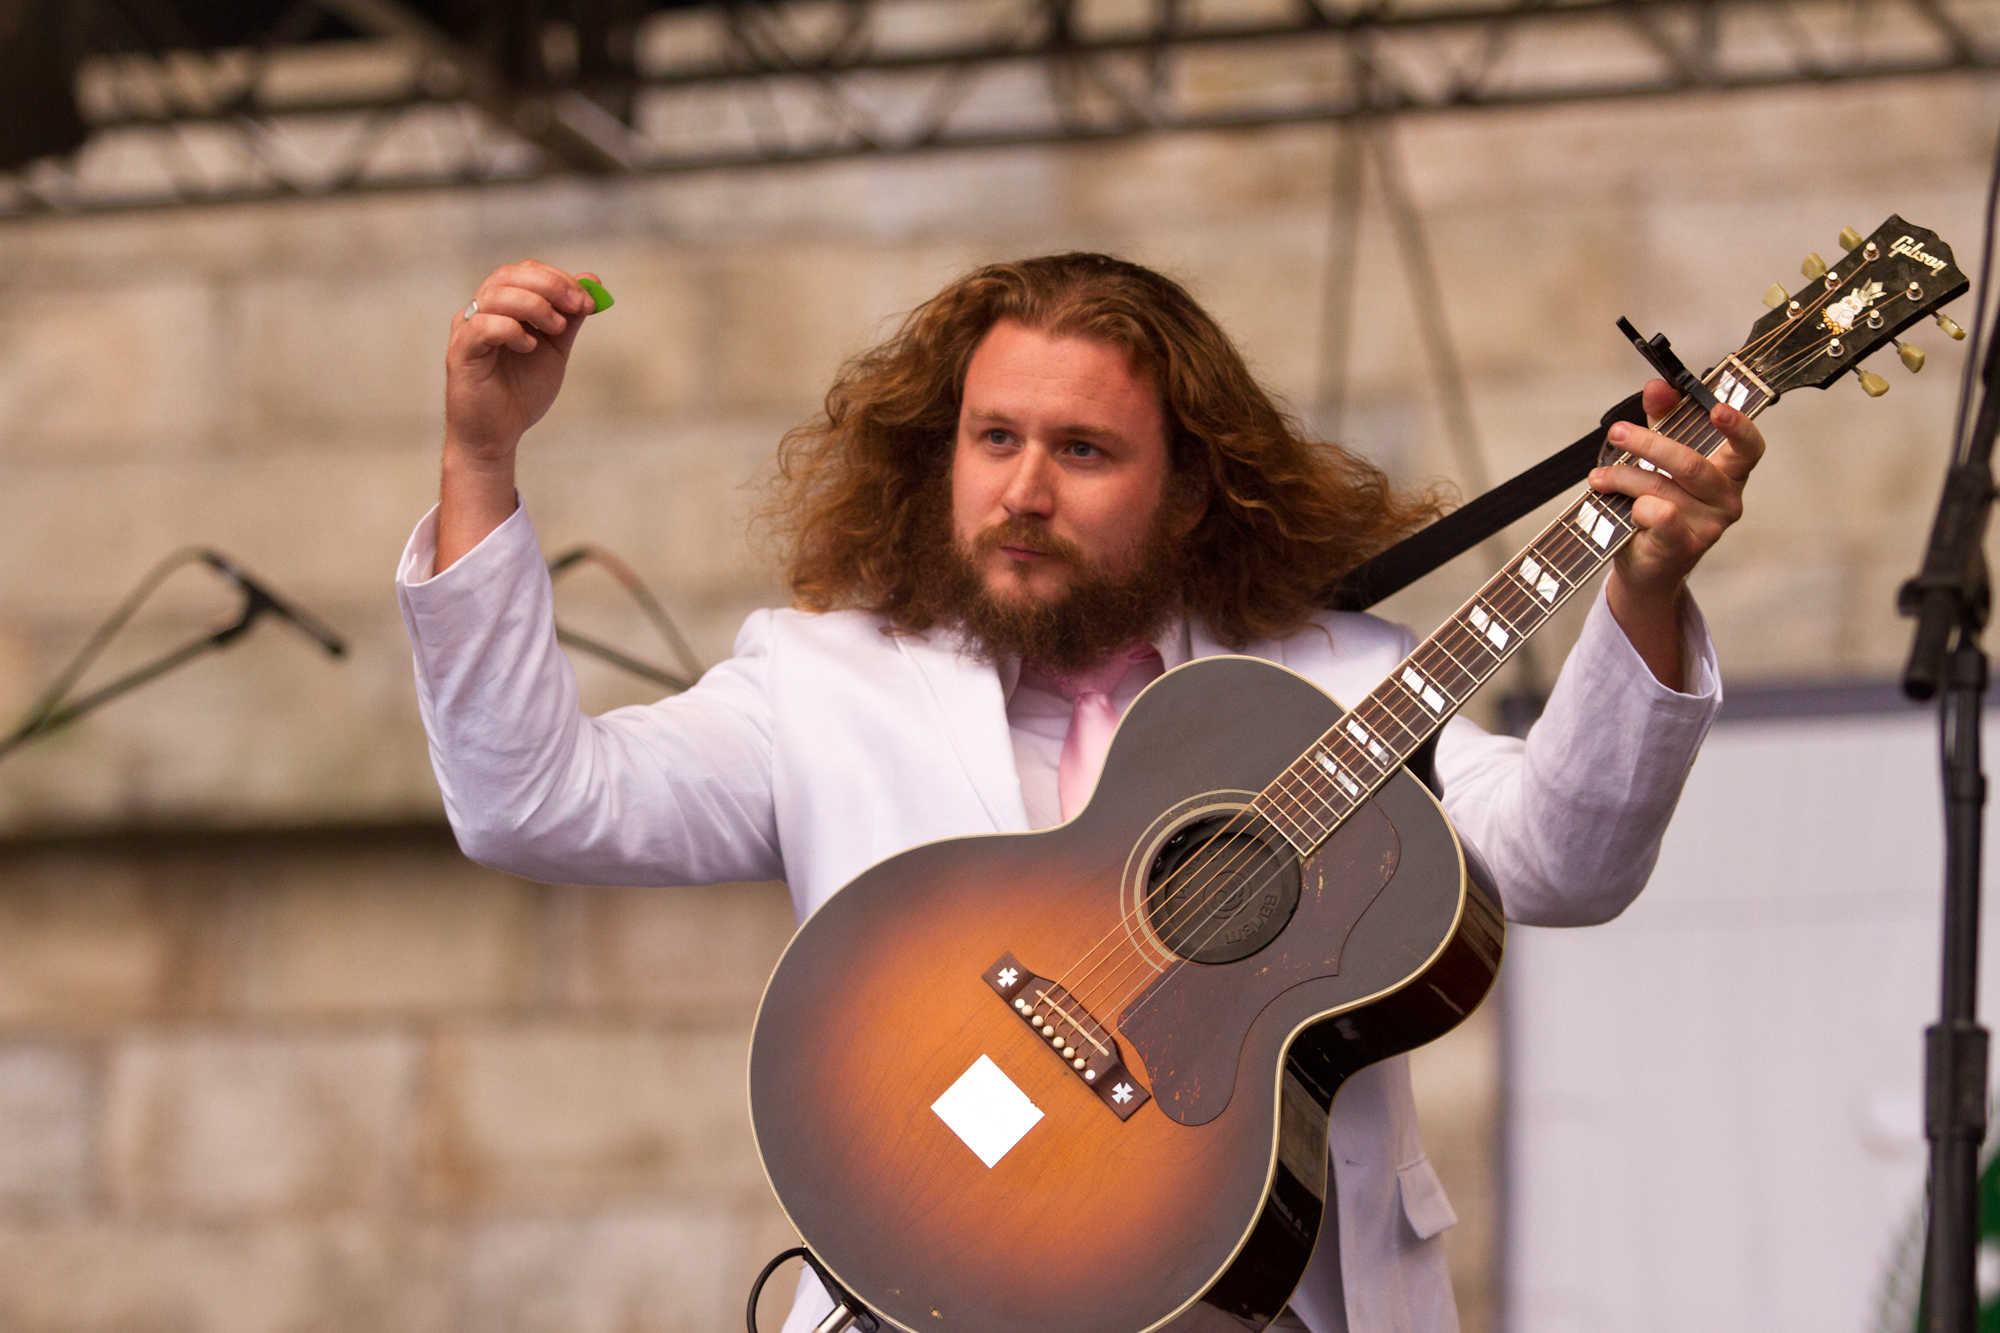 Jim James' hair and seersucker suit were in full force during My Morning Jacket's set at the Fort Stage.